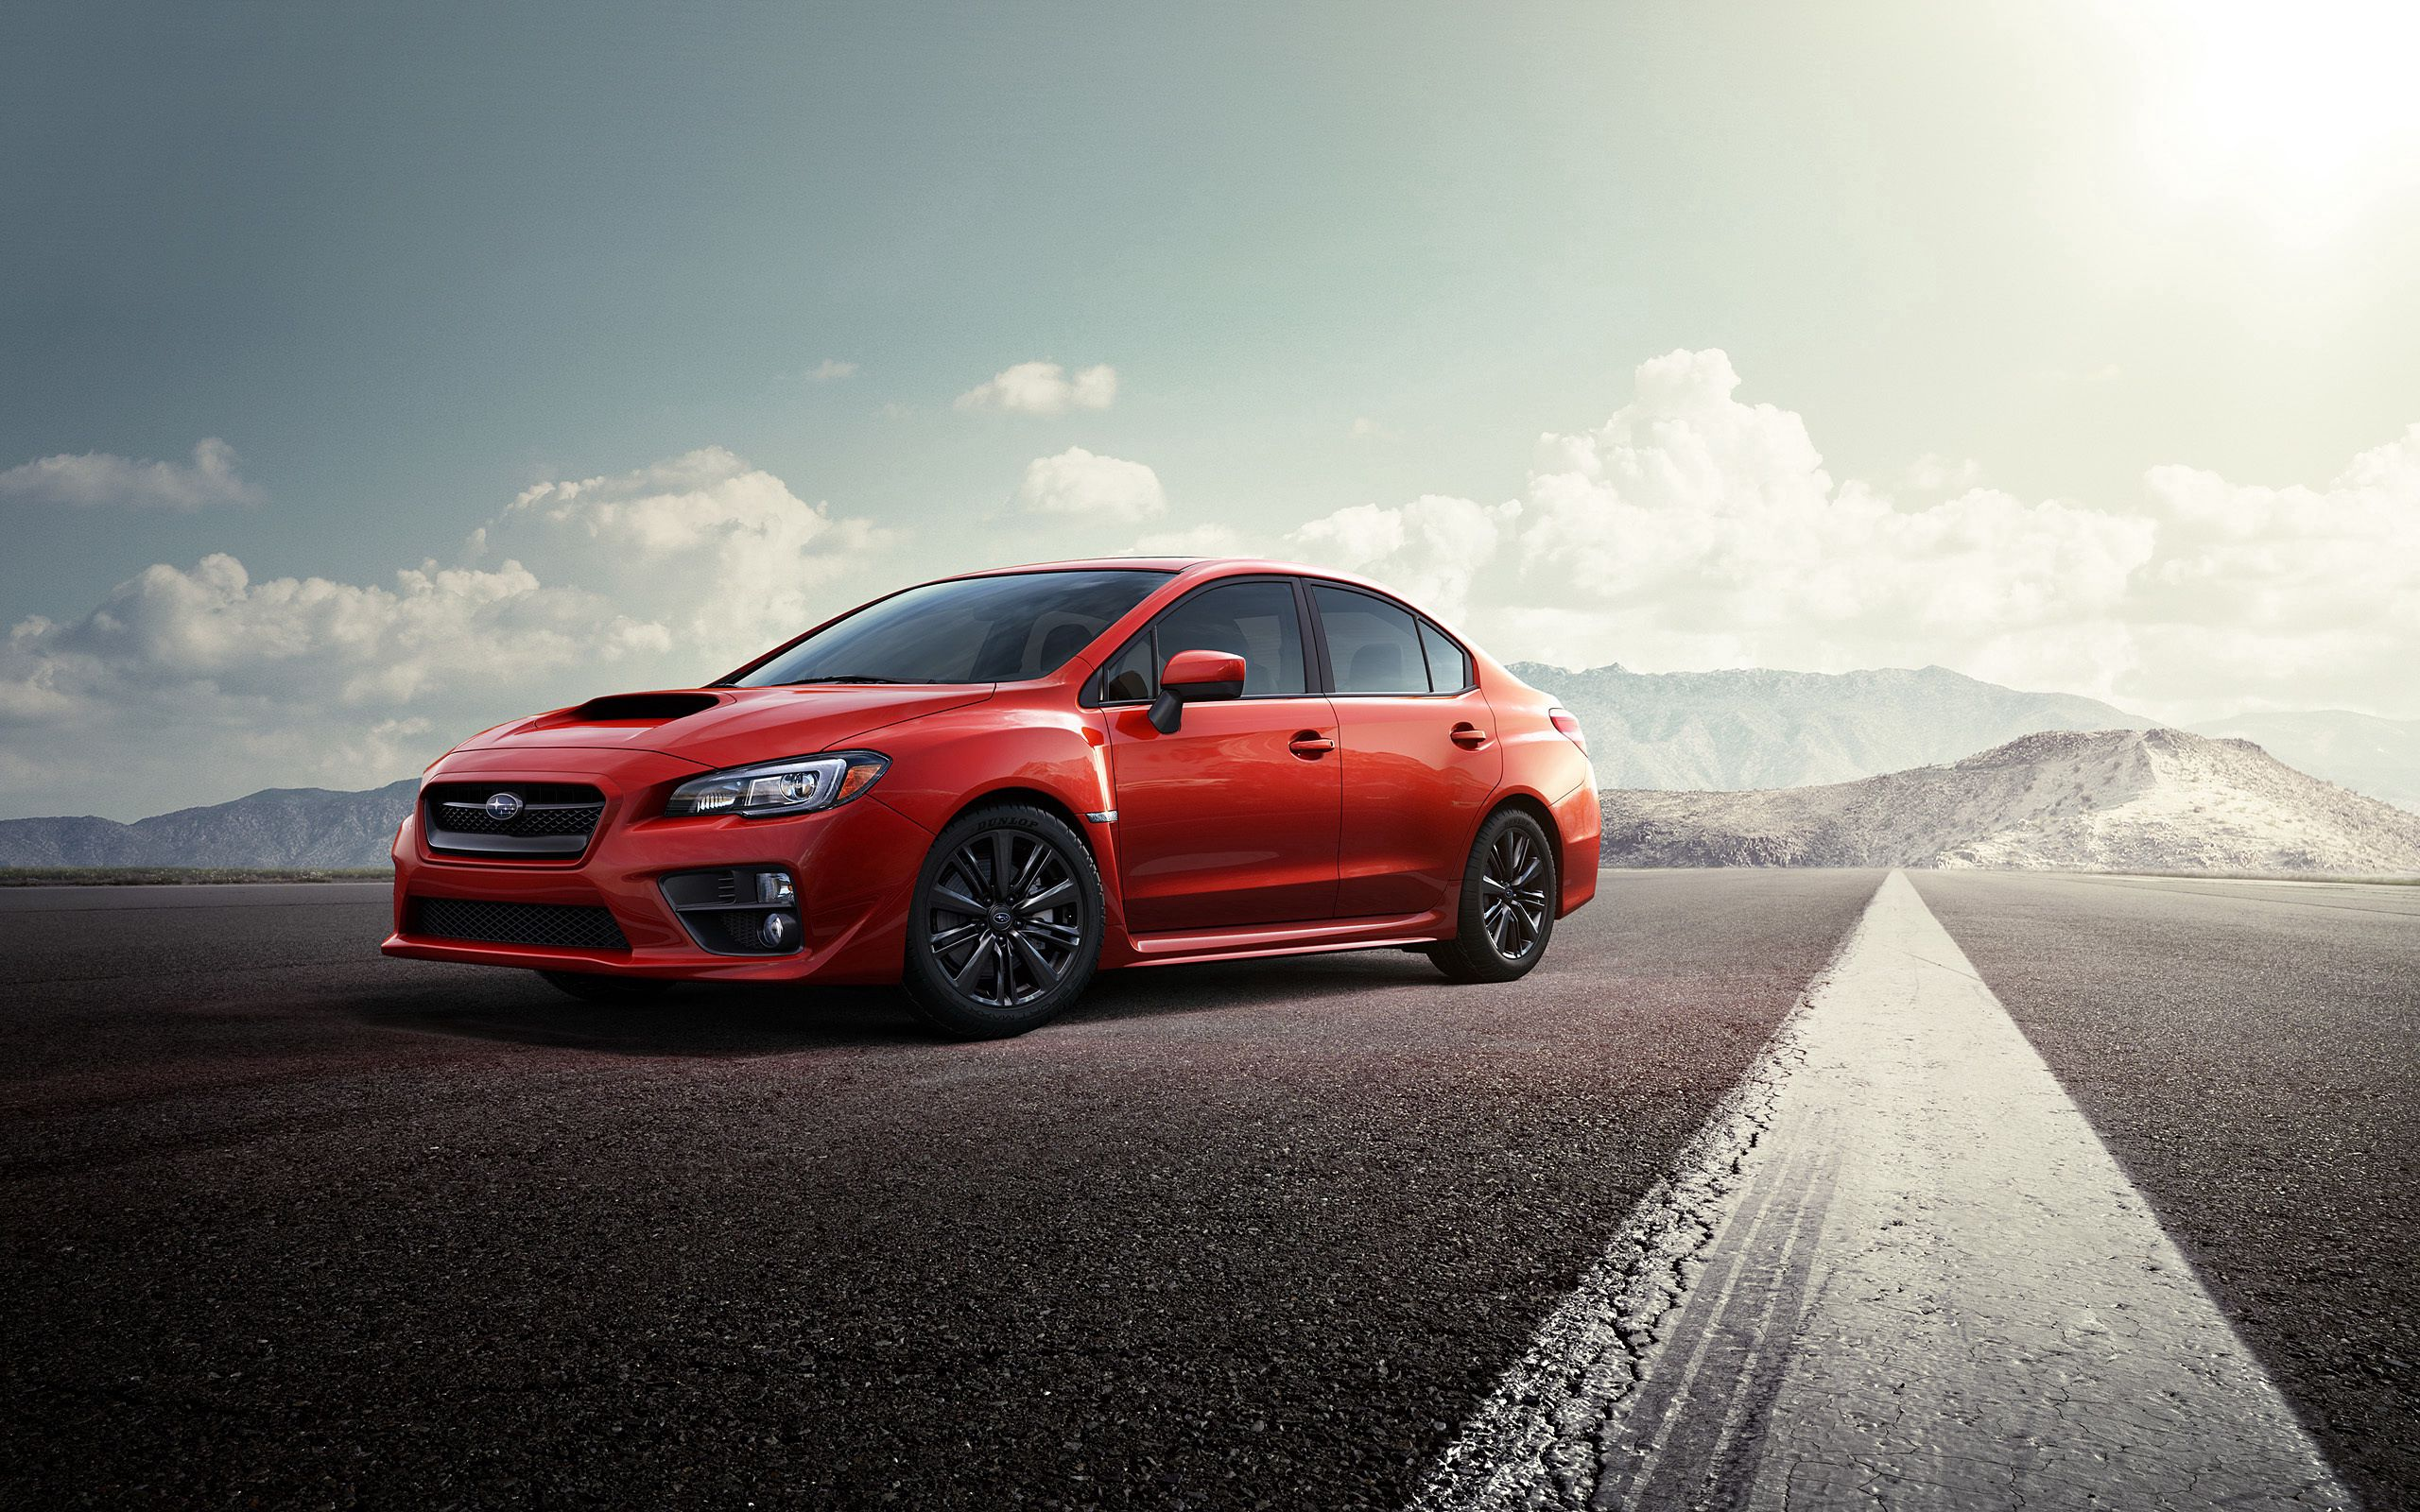 153619 download wallpaper Subaru, Cars, Road, Side View screensavers and pictures for free